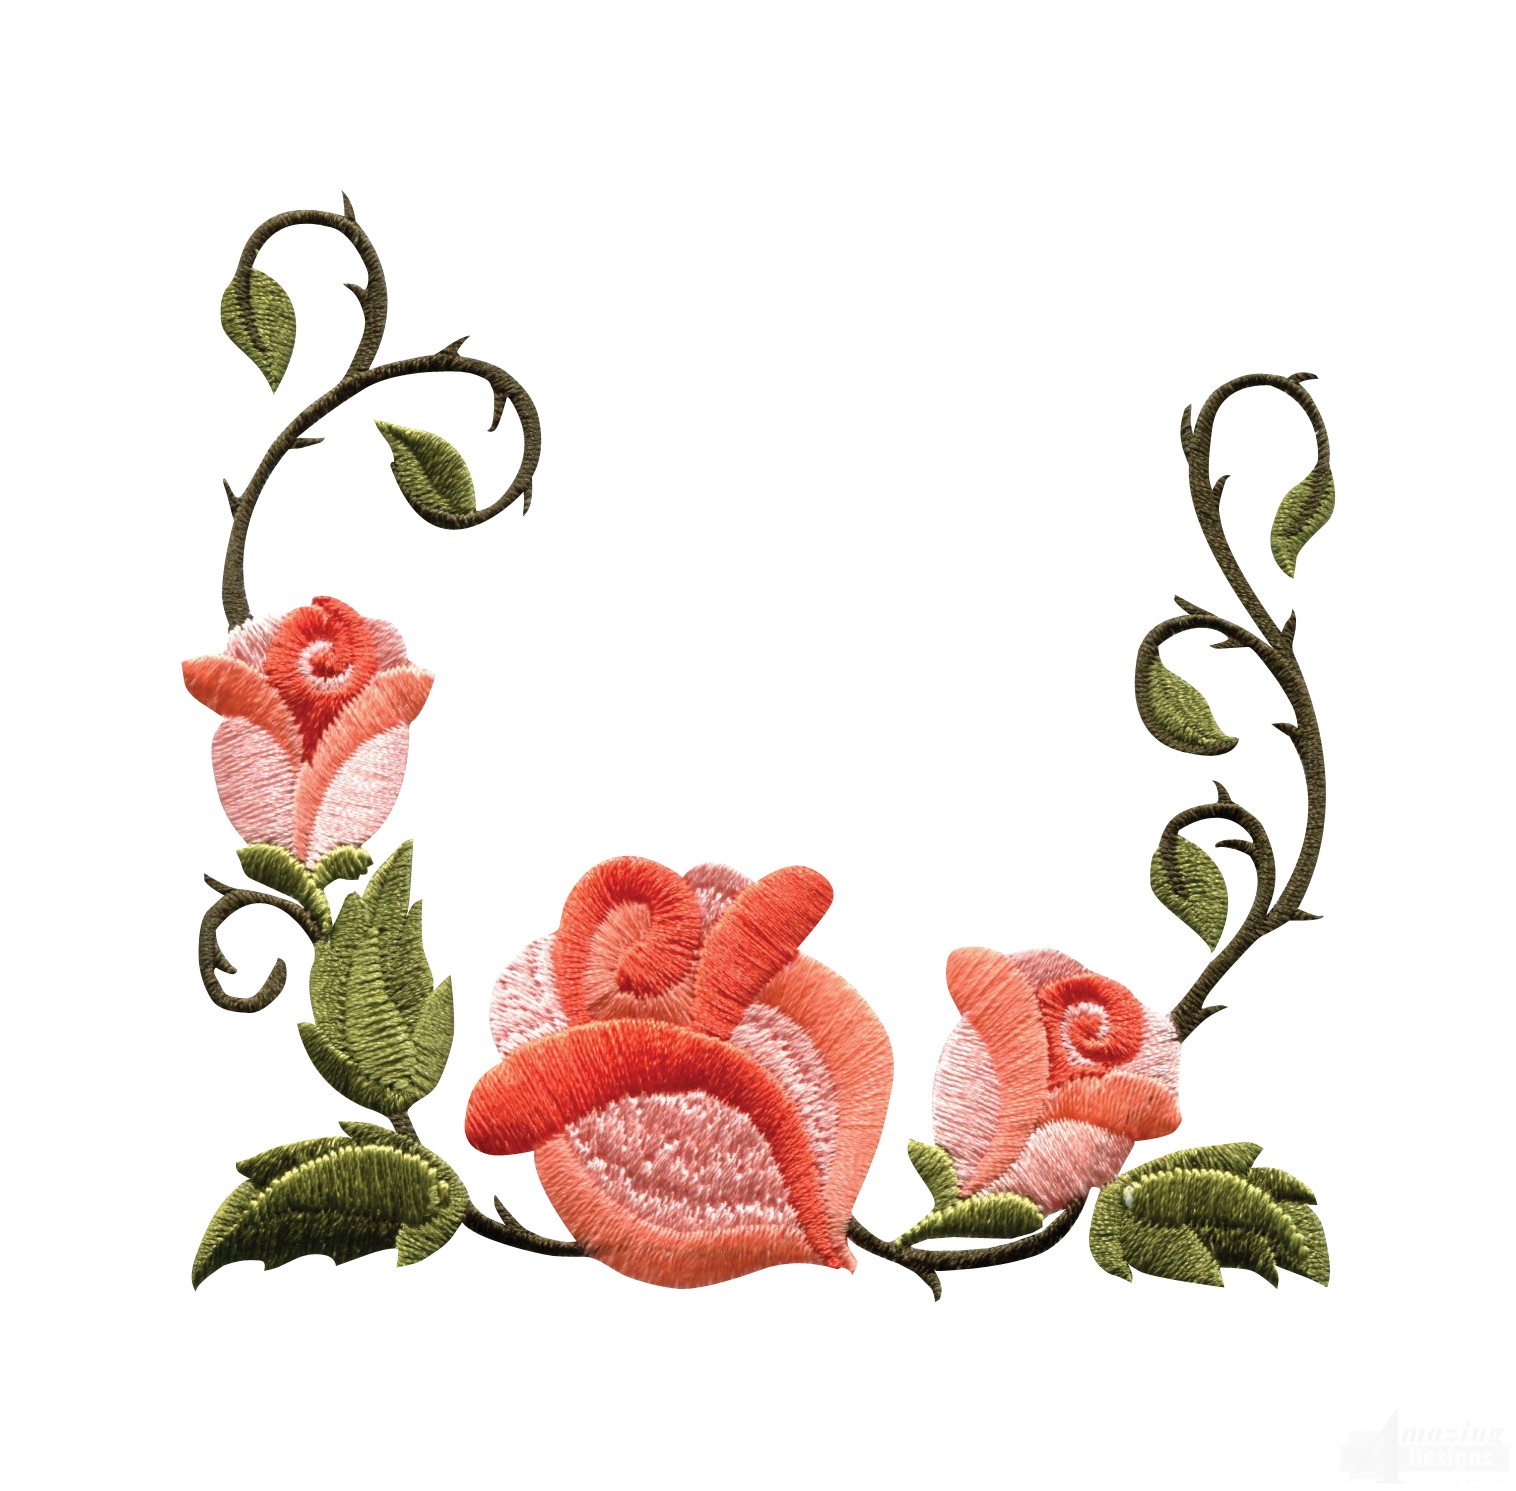 Free Rose Flower Design Border, Download Free Clip Art, Free.